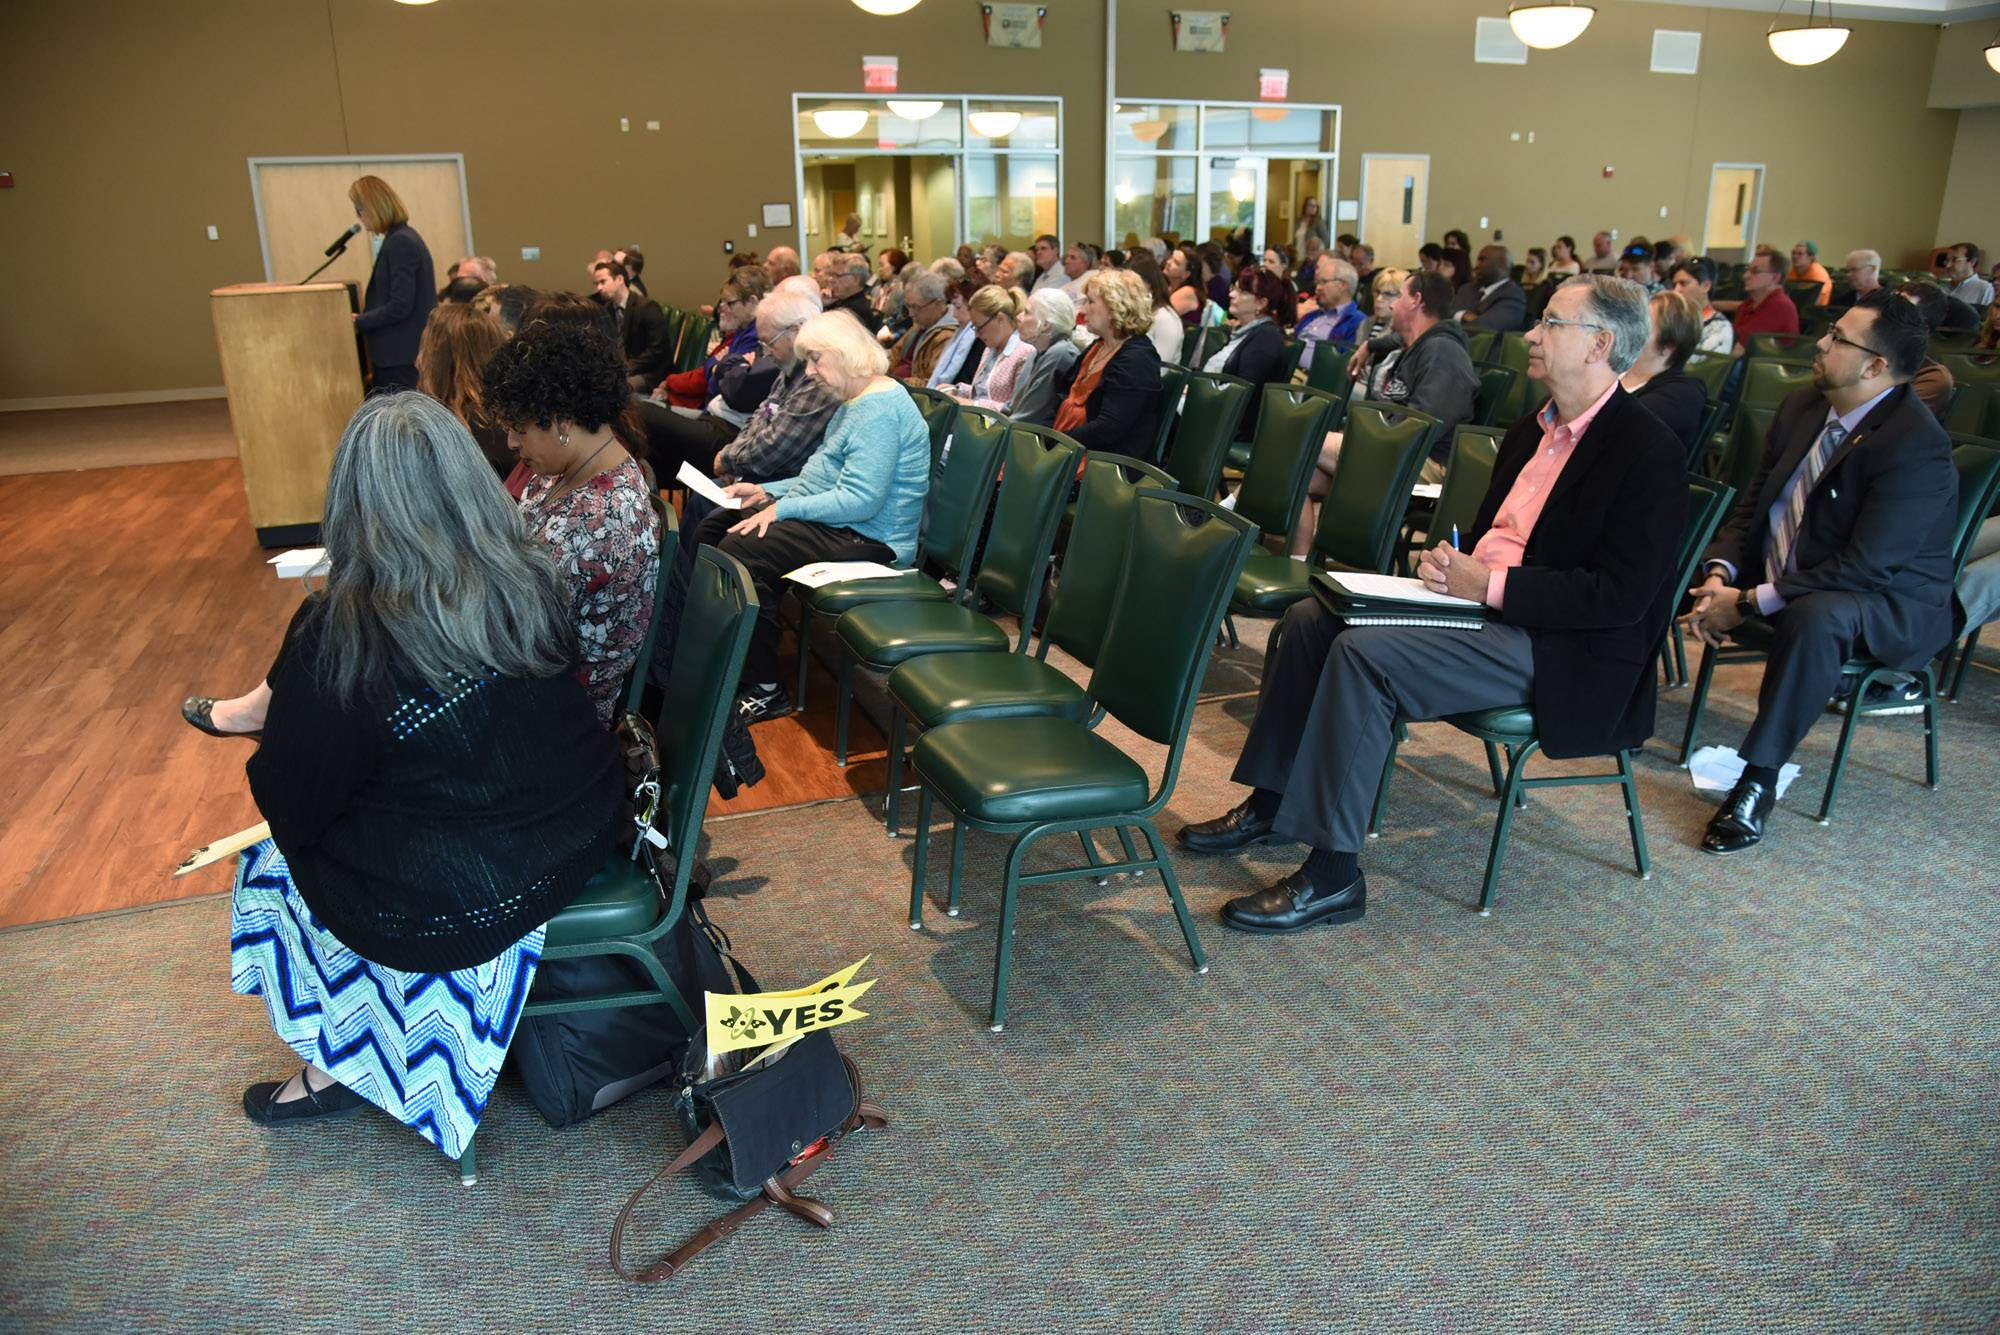 The crowd listens at a public hearing Thursday on the potential development of a charter school in Elgin.